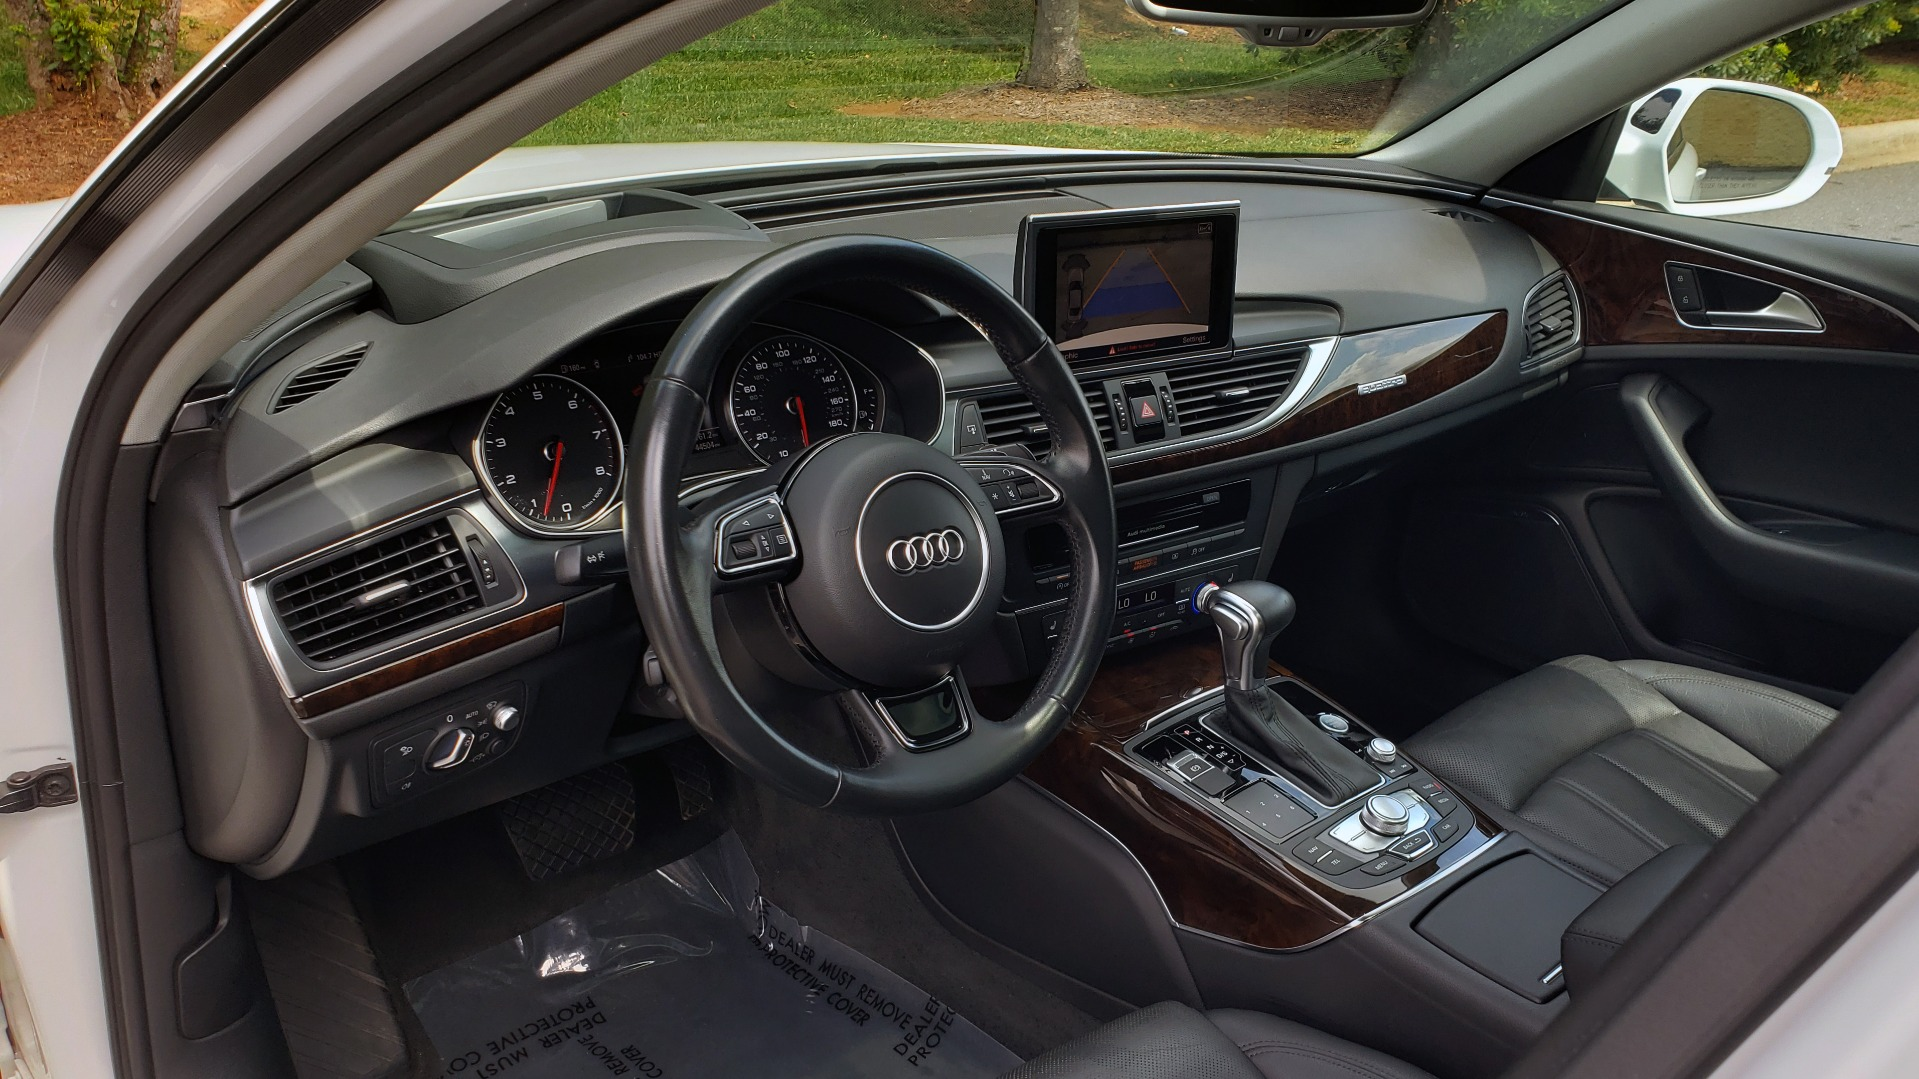 Used 2015 Audi A6 3.0T PRESTIGE / BLACK OPTIC / NAV / BOSE / SUNROOF / REARVIEW for sale Sold at Formula Imports in Charlotte NC 28227 45